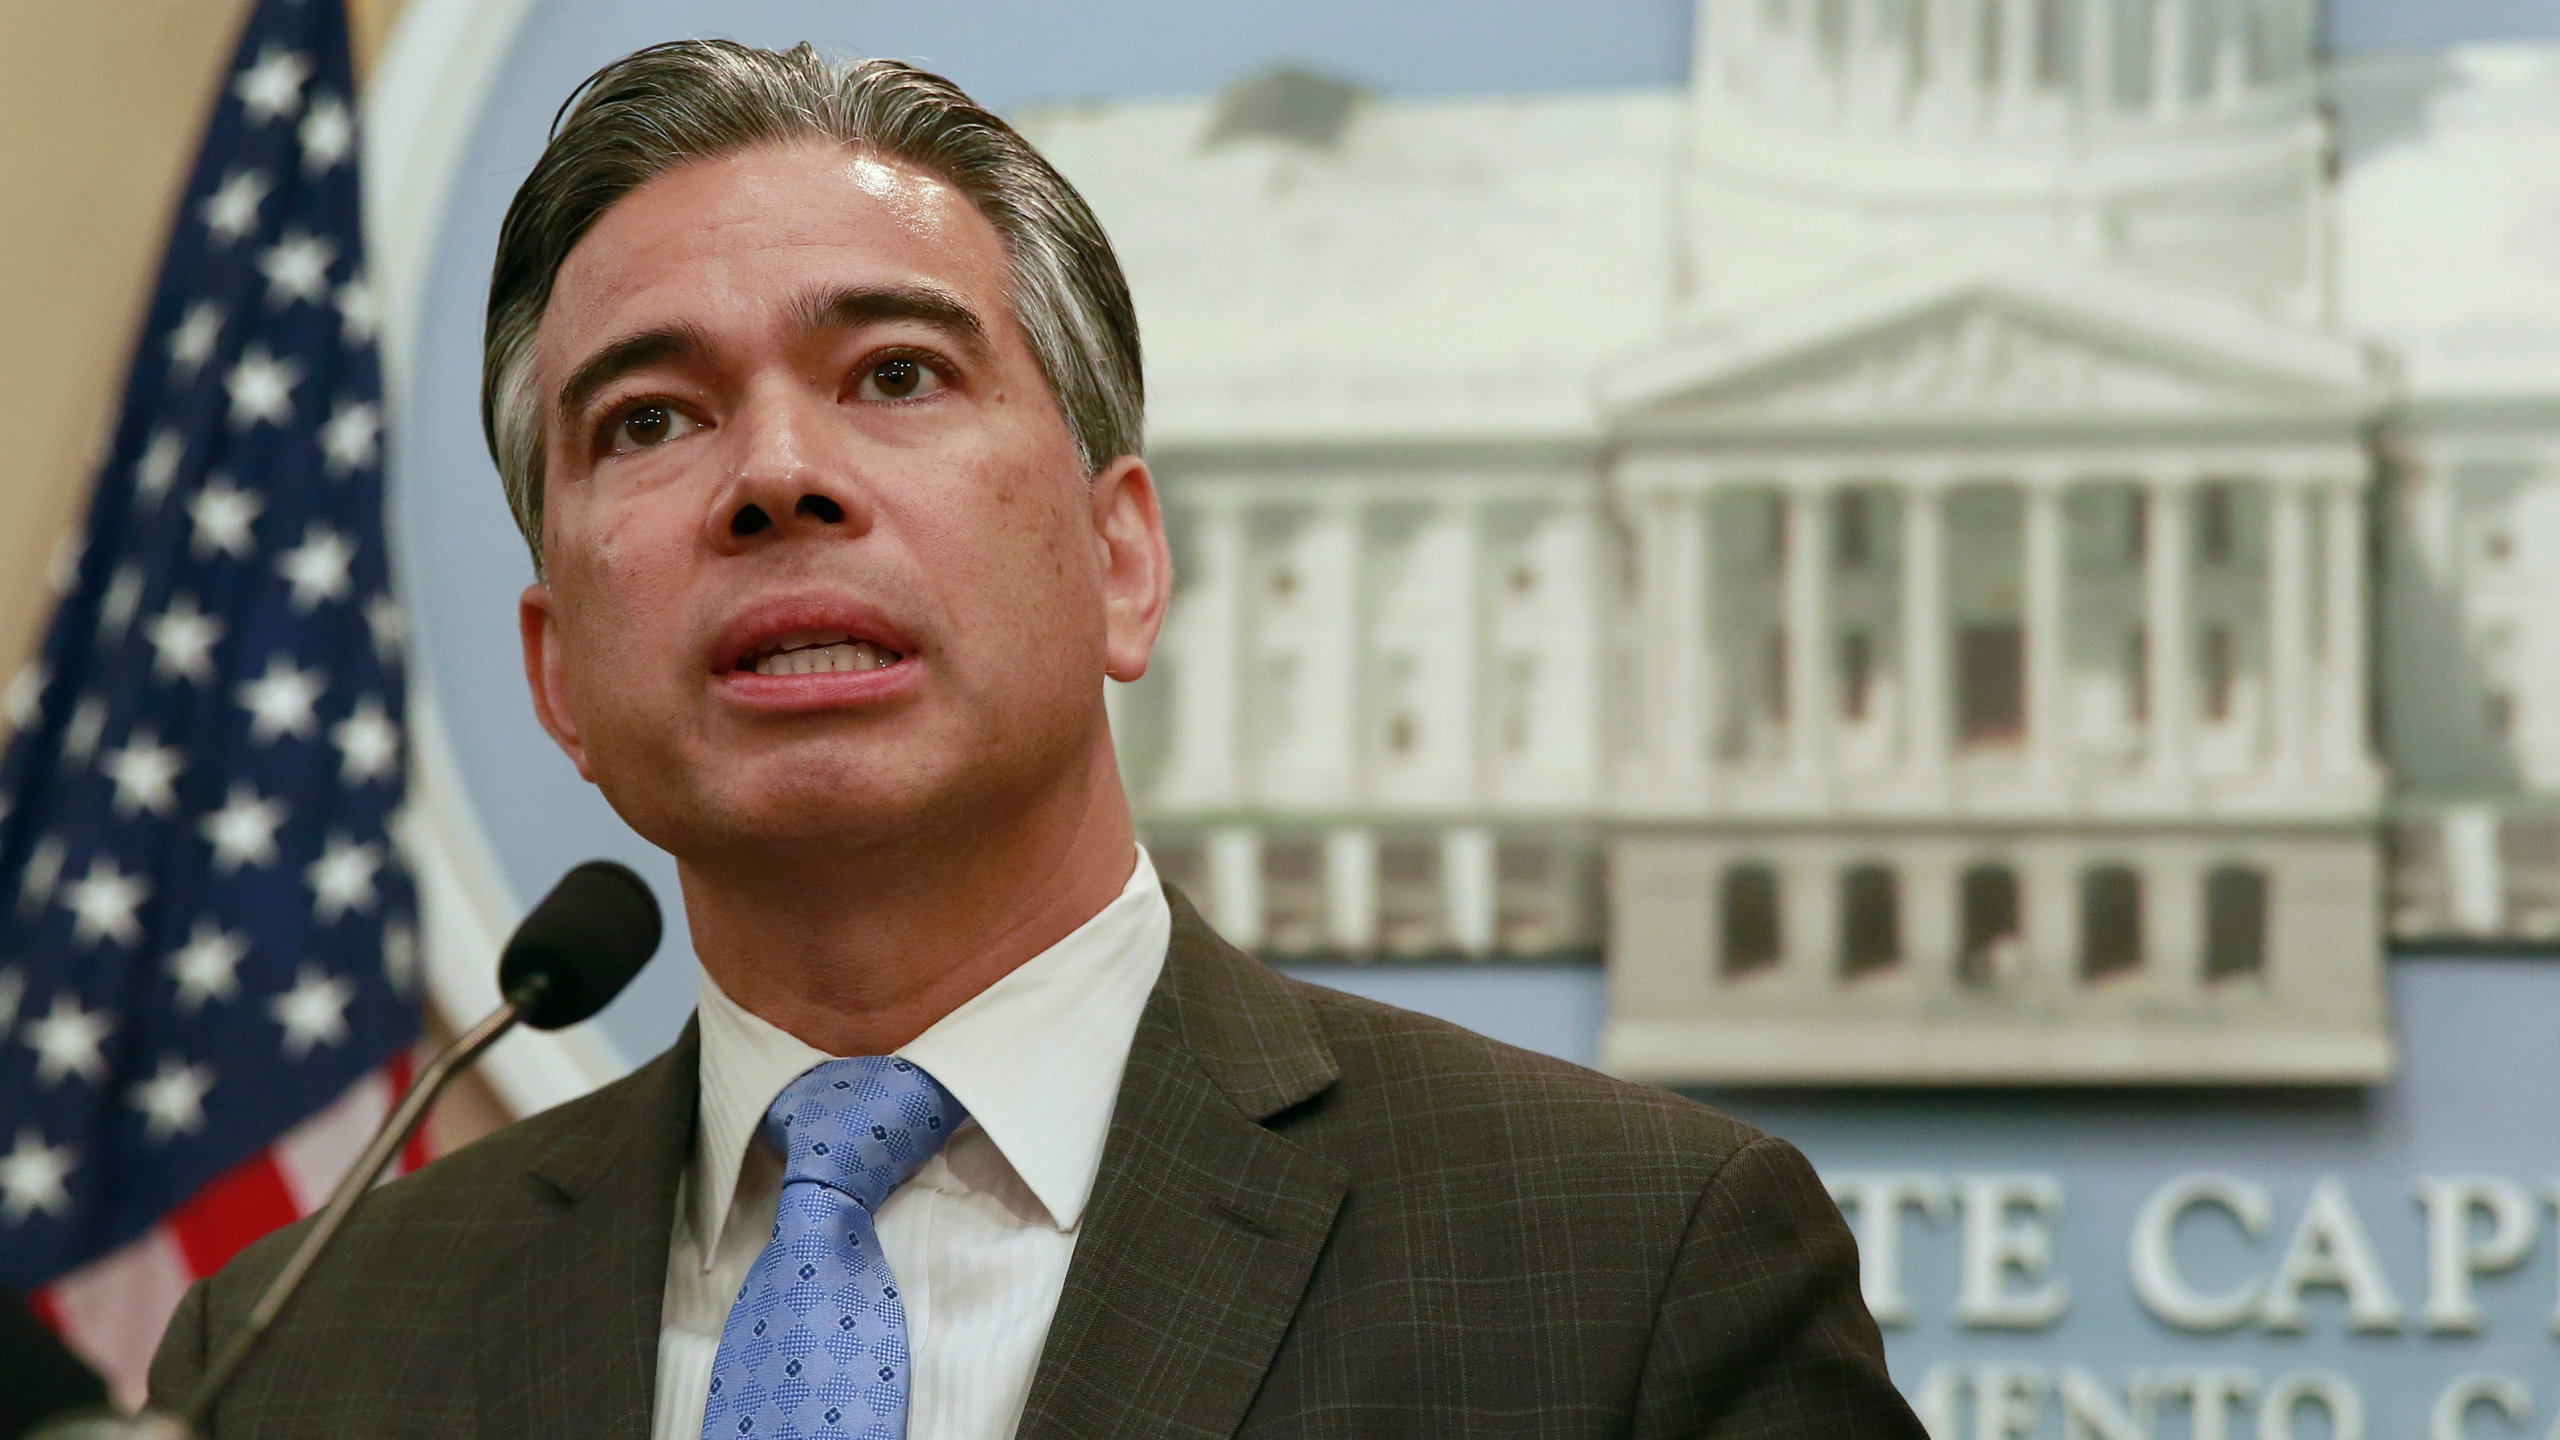 In this Jan. 9, 2018, file photo, Assemblyman Rob Bonta, D-Oakland, speaks during a news conference in Sacramento, Calif. (AP Photo/Rich Pedroncelli, File)